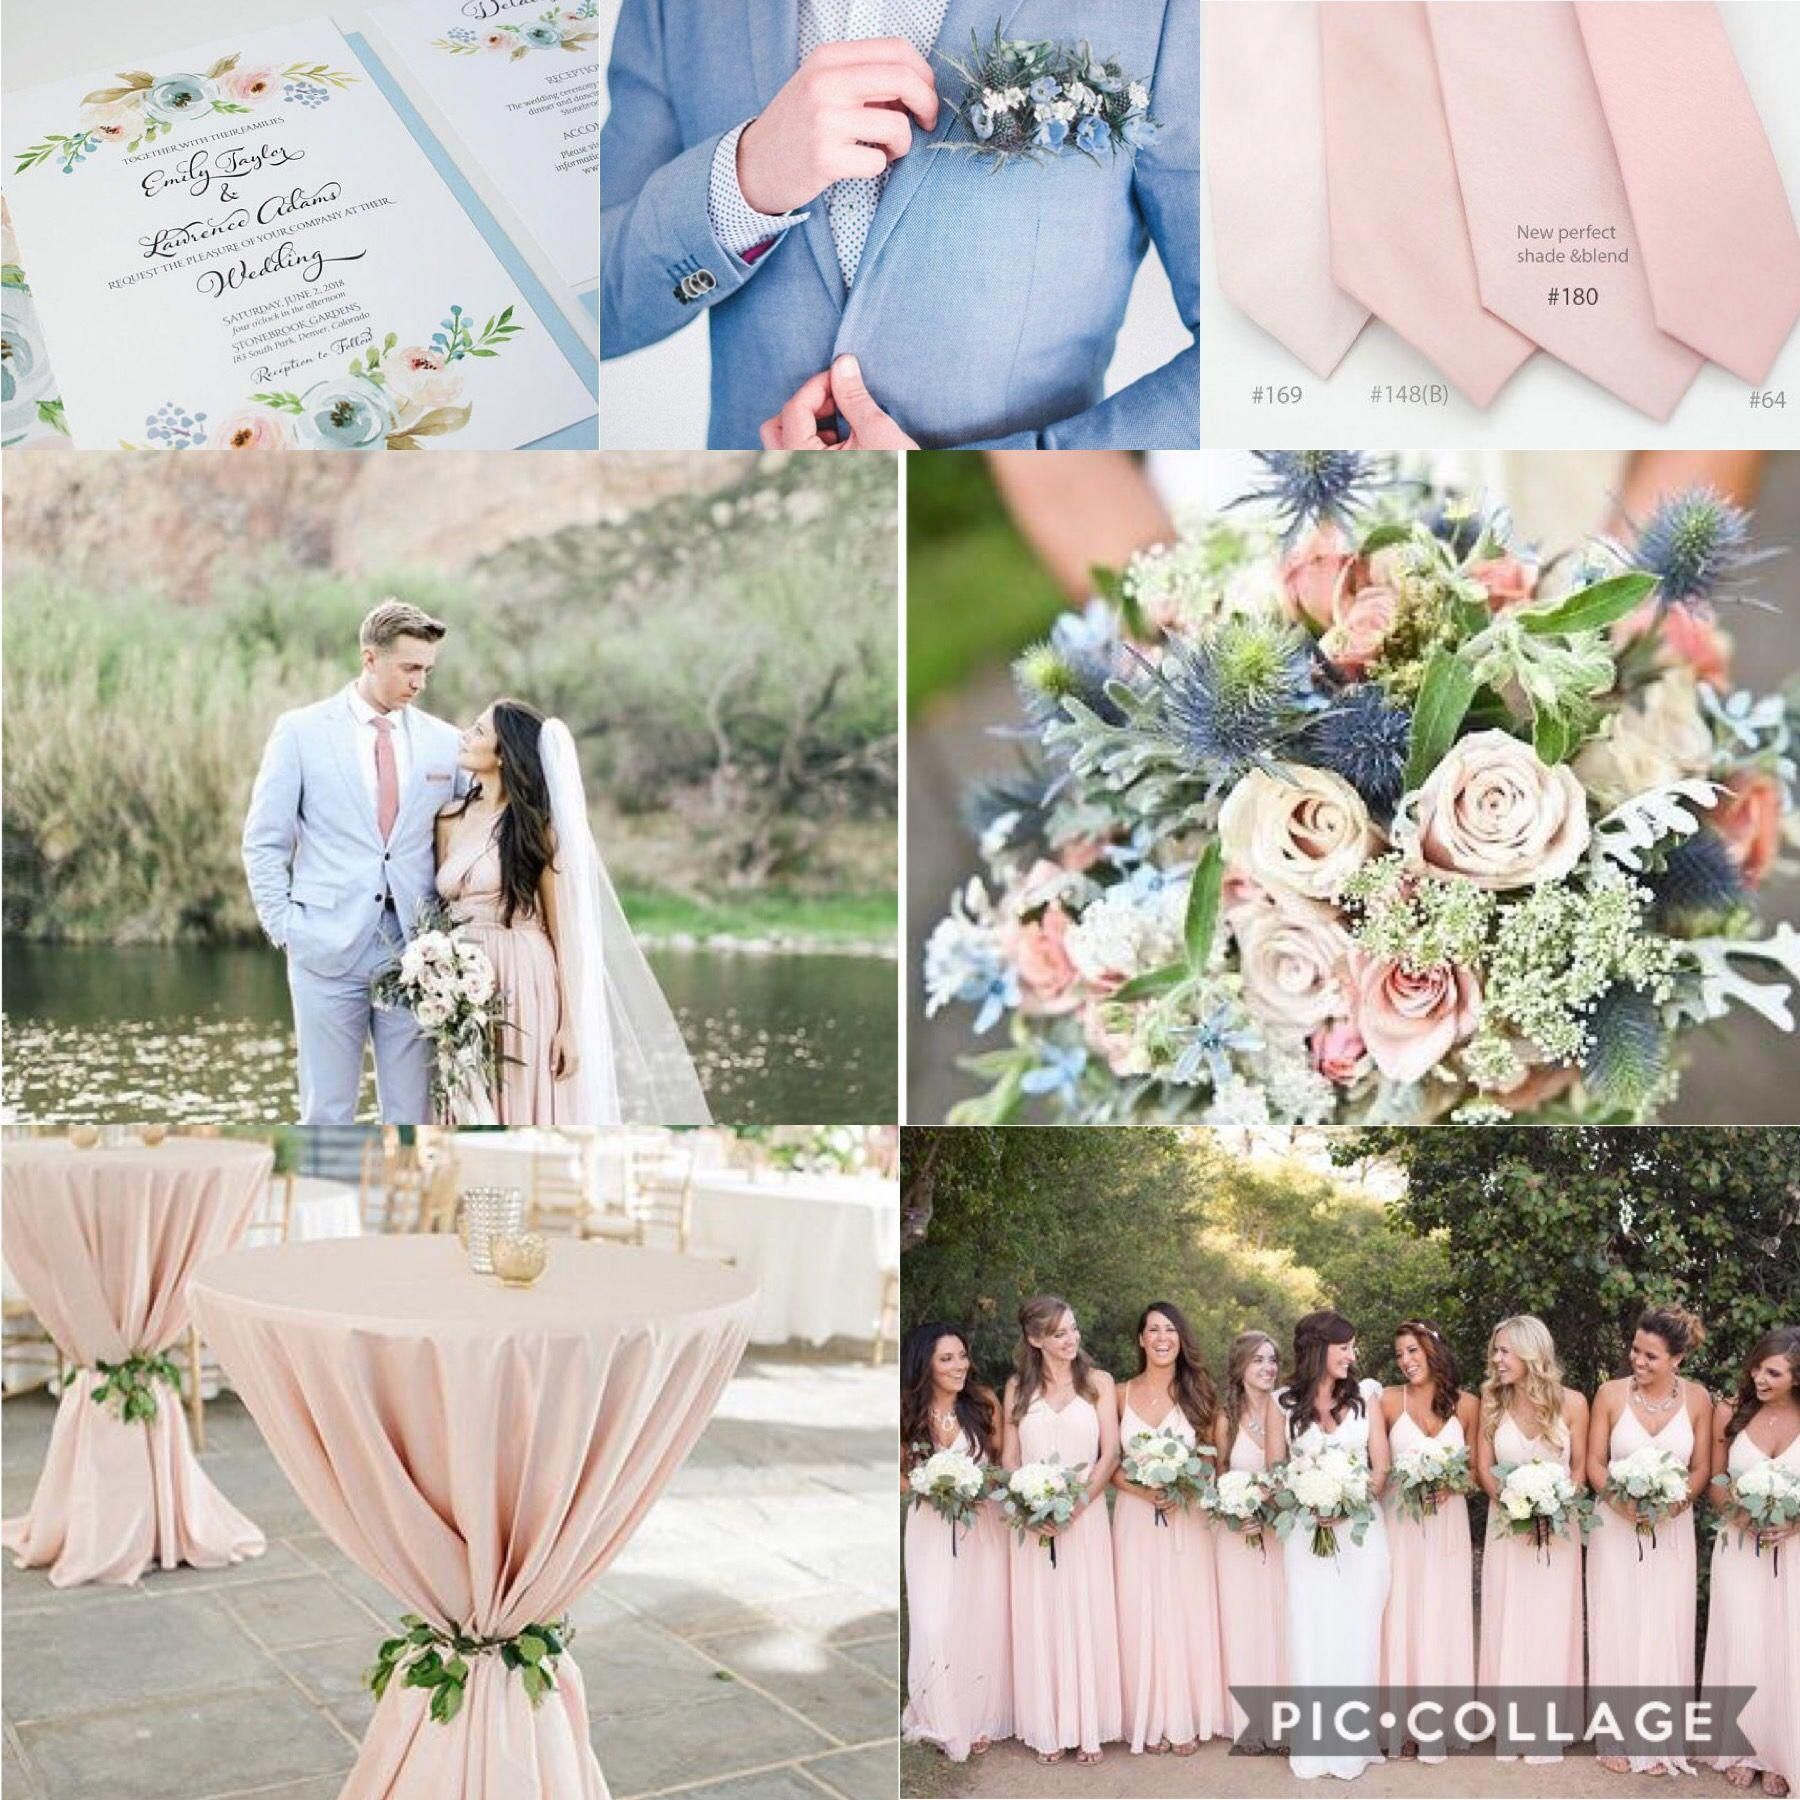 Wedding decorations yellow and white november 2018 Dusty Blue Blush and Green Wedding Colors